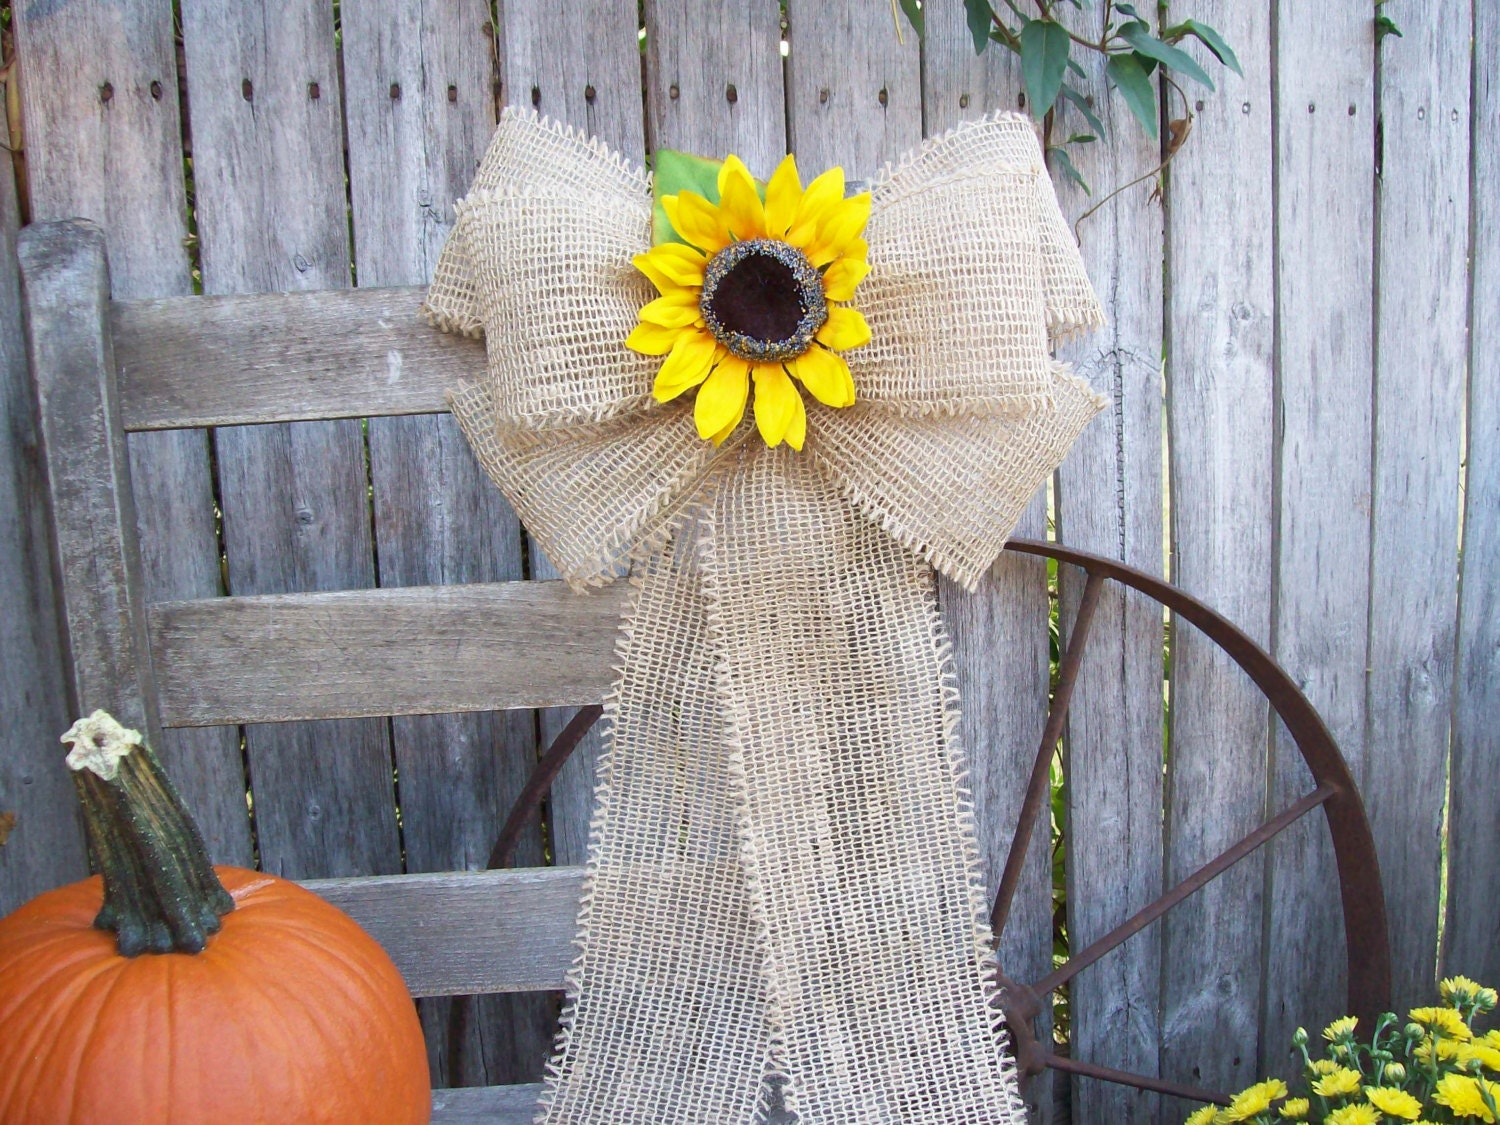 burlap and sunflower pew bow country wedding decor barn. Black Bedroom Furniture Sets. Home Design Ideas